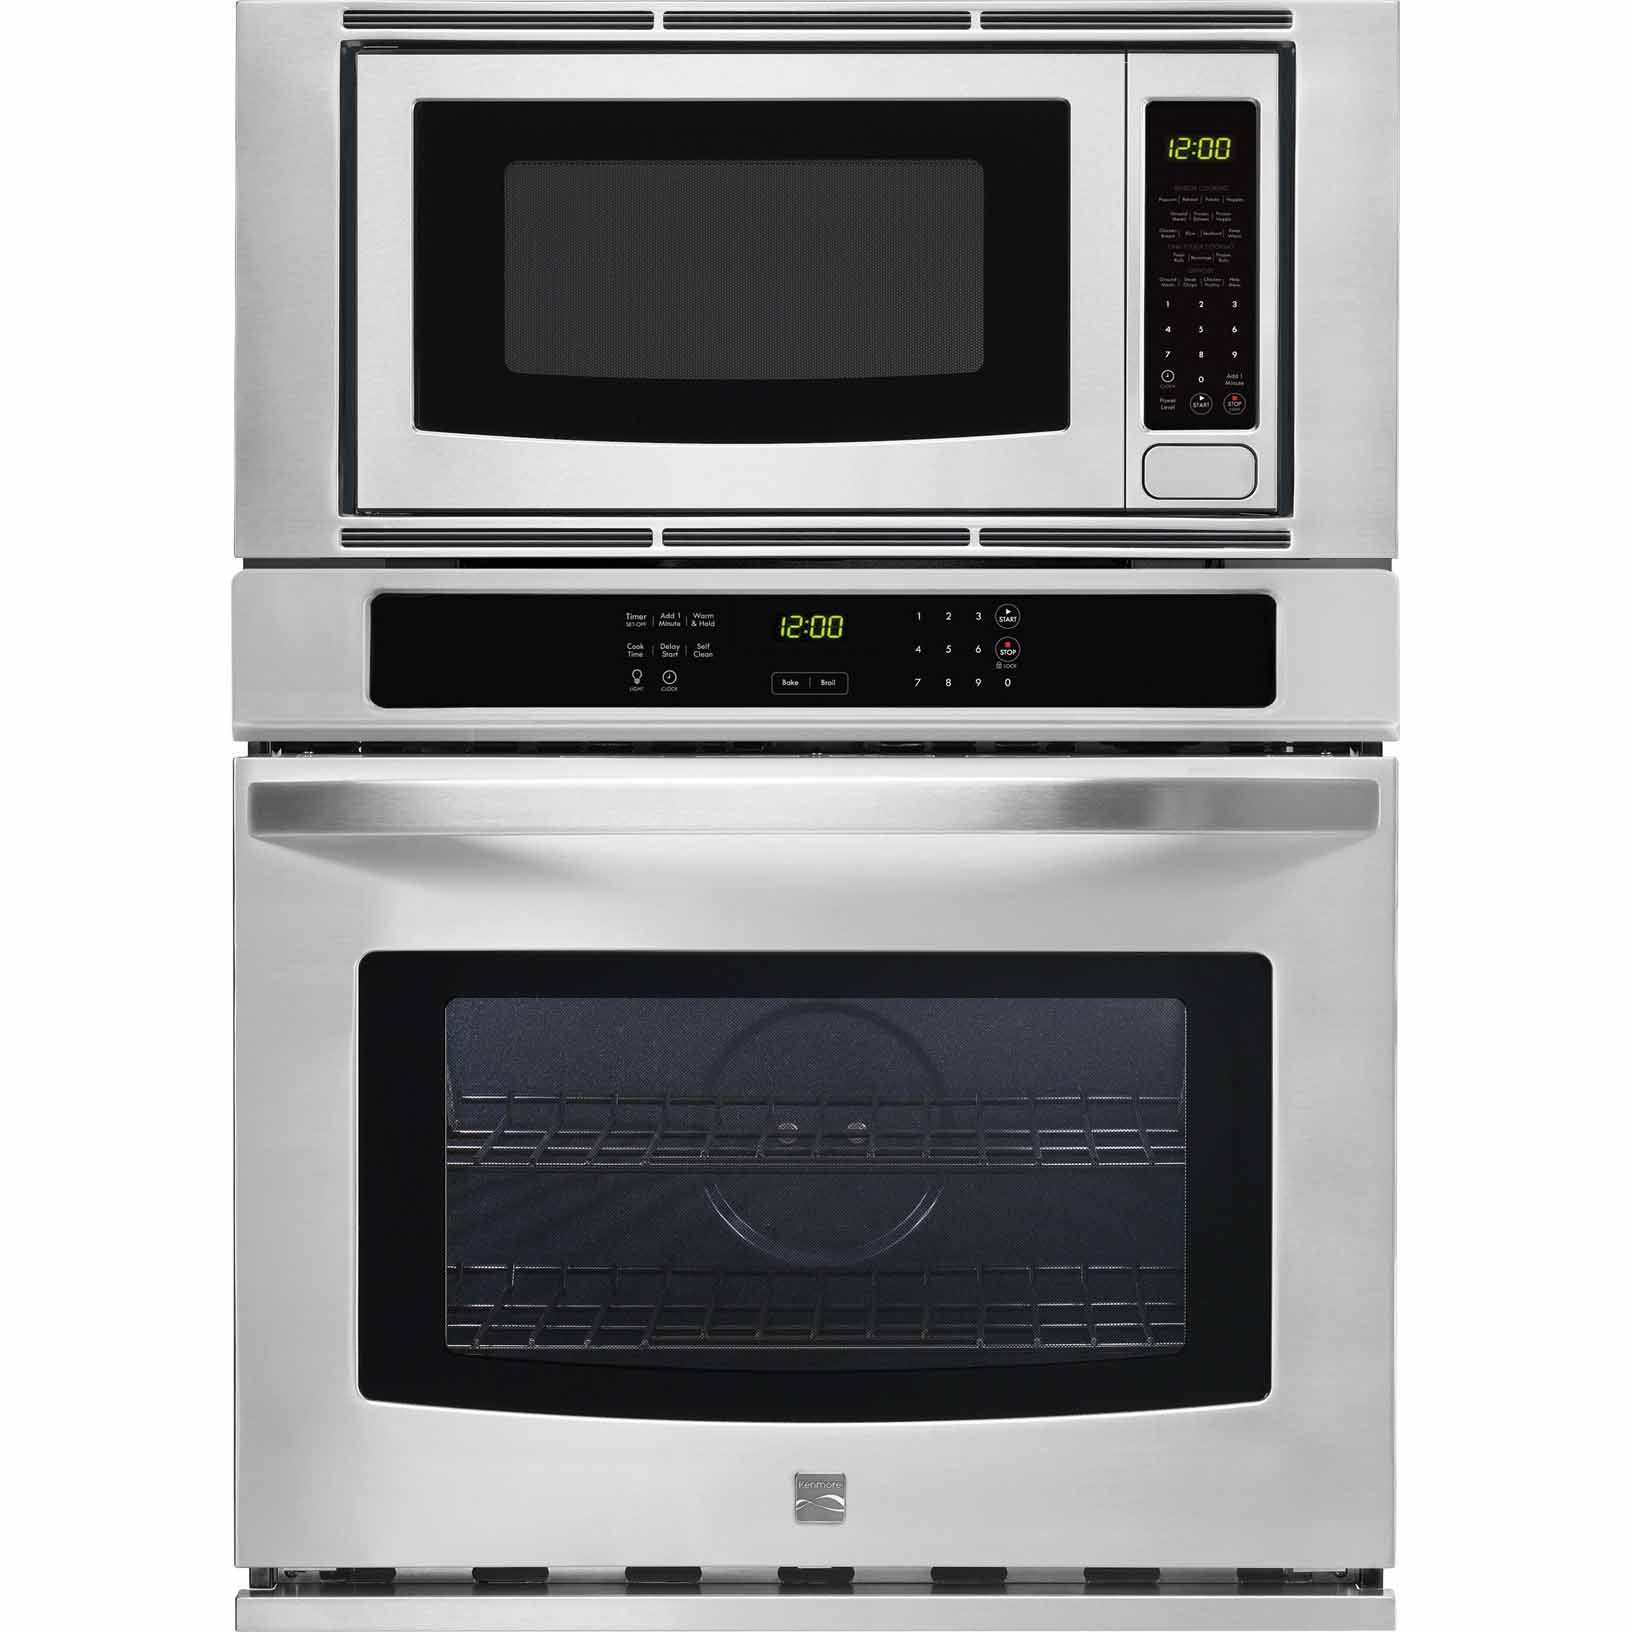 Kenmore 49613 30 Electric Combination Wall Oven - Stainless Steel